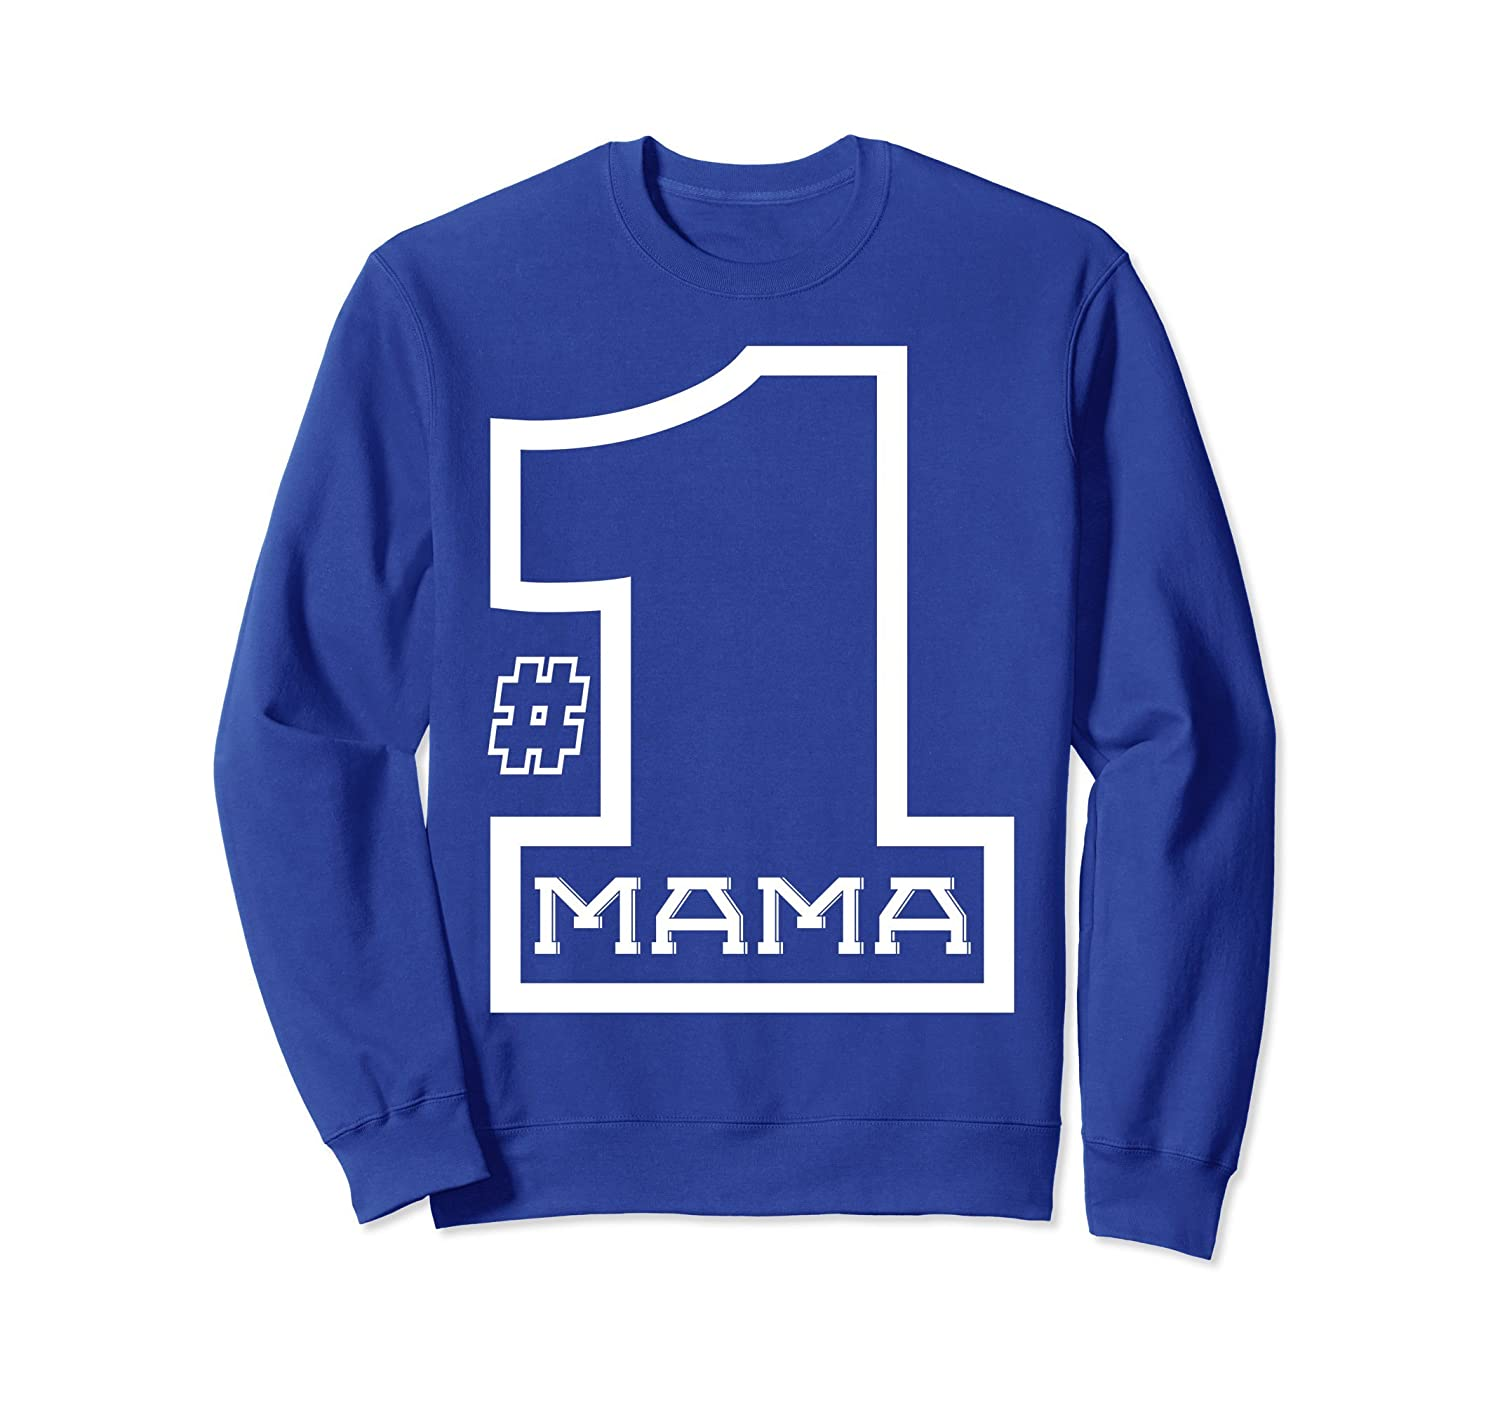 #1 Mama Number One Sweatshirt gift for Mama Mother's day- TPT